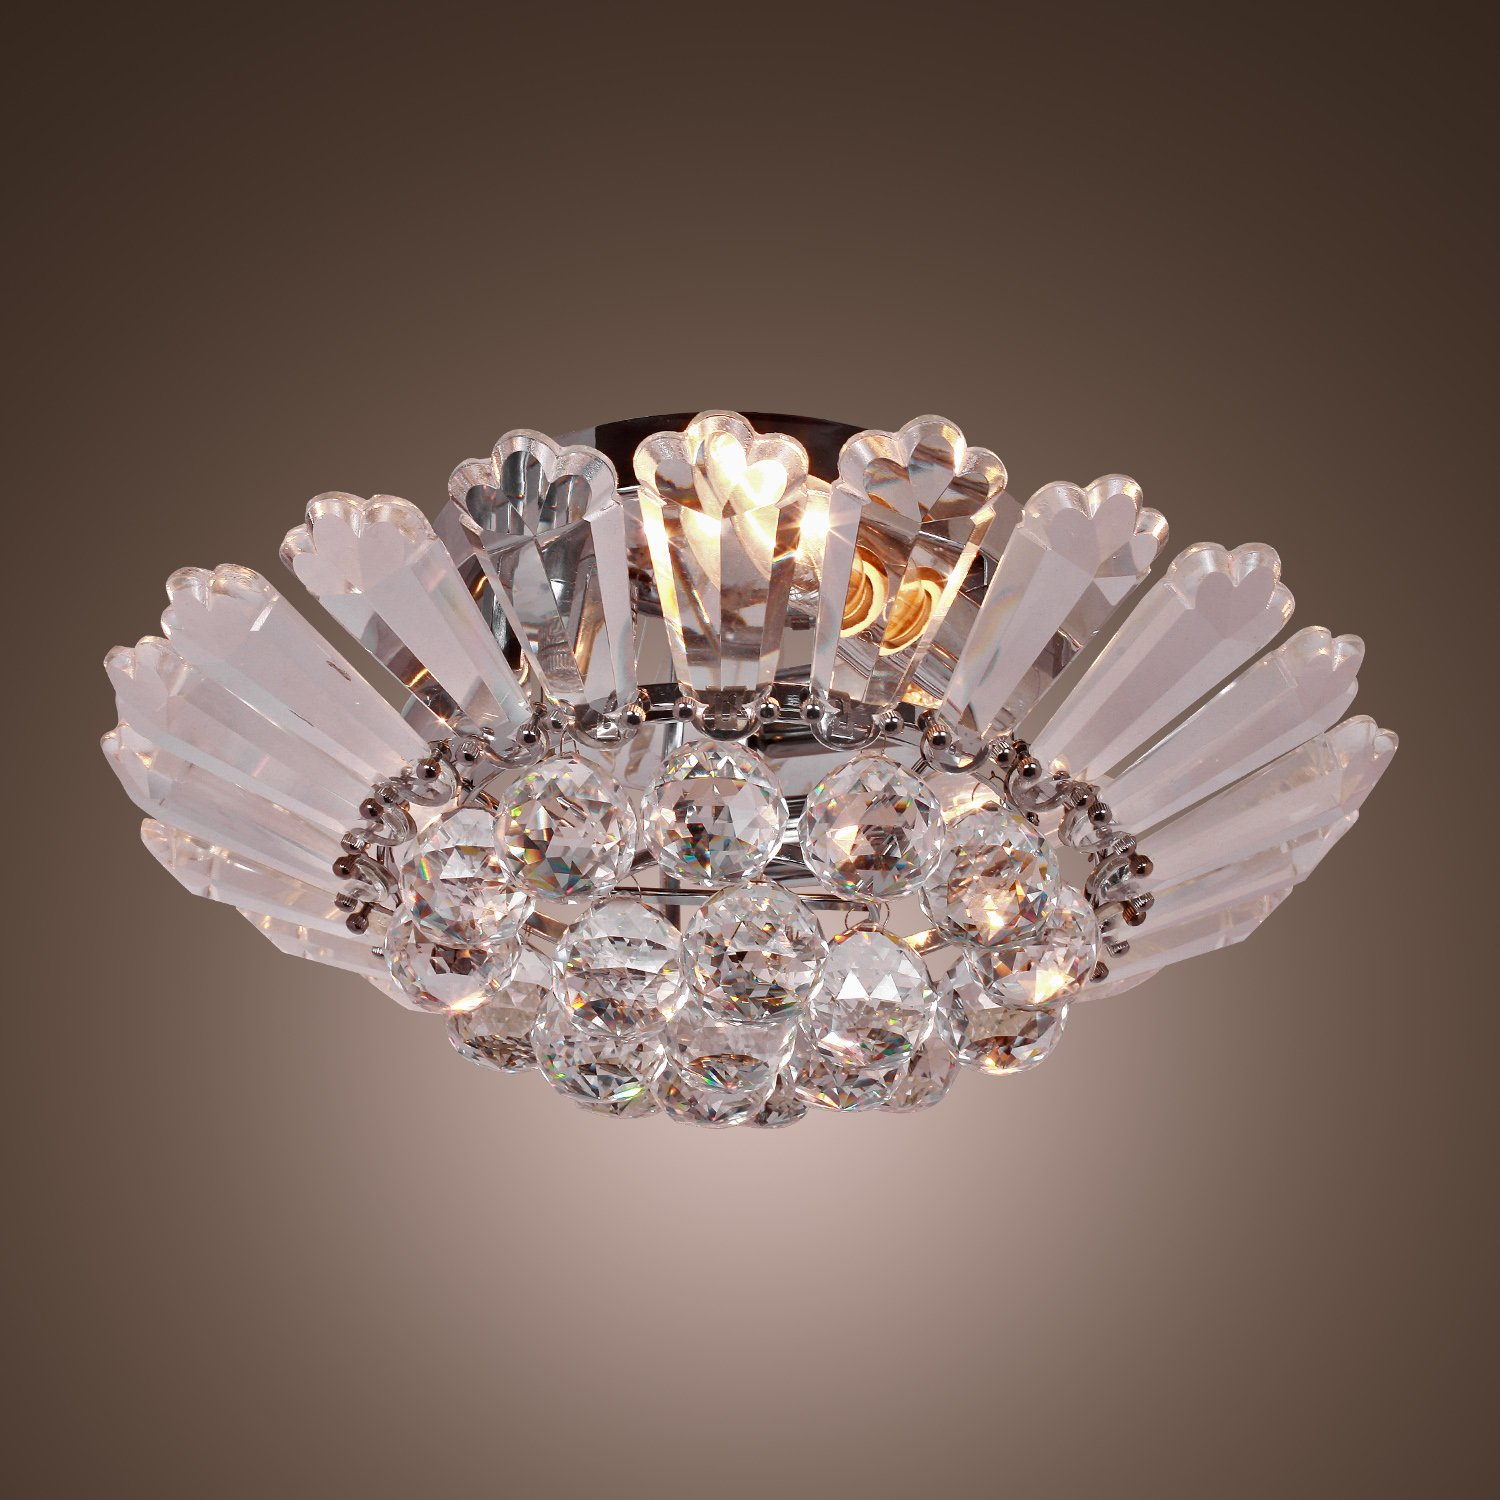 Lightinthebox modern semi flush mount in crystal feature home lightinthebox modern semi flush mount in crystal feature home ceiling light fixture chandeliers lighting for dining room bedroom living room close to aloadofball Gallery